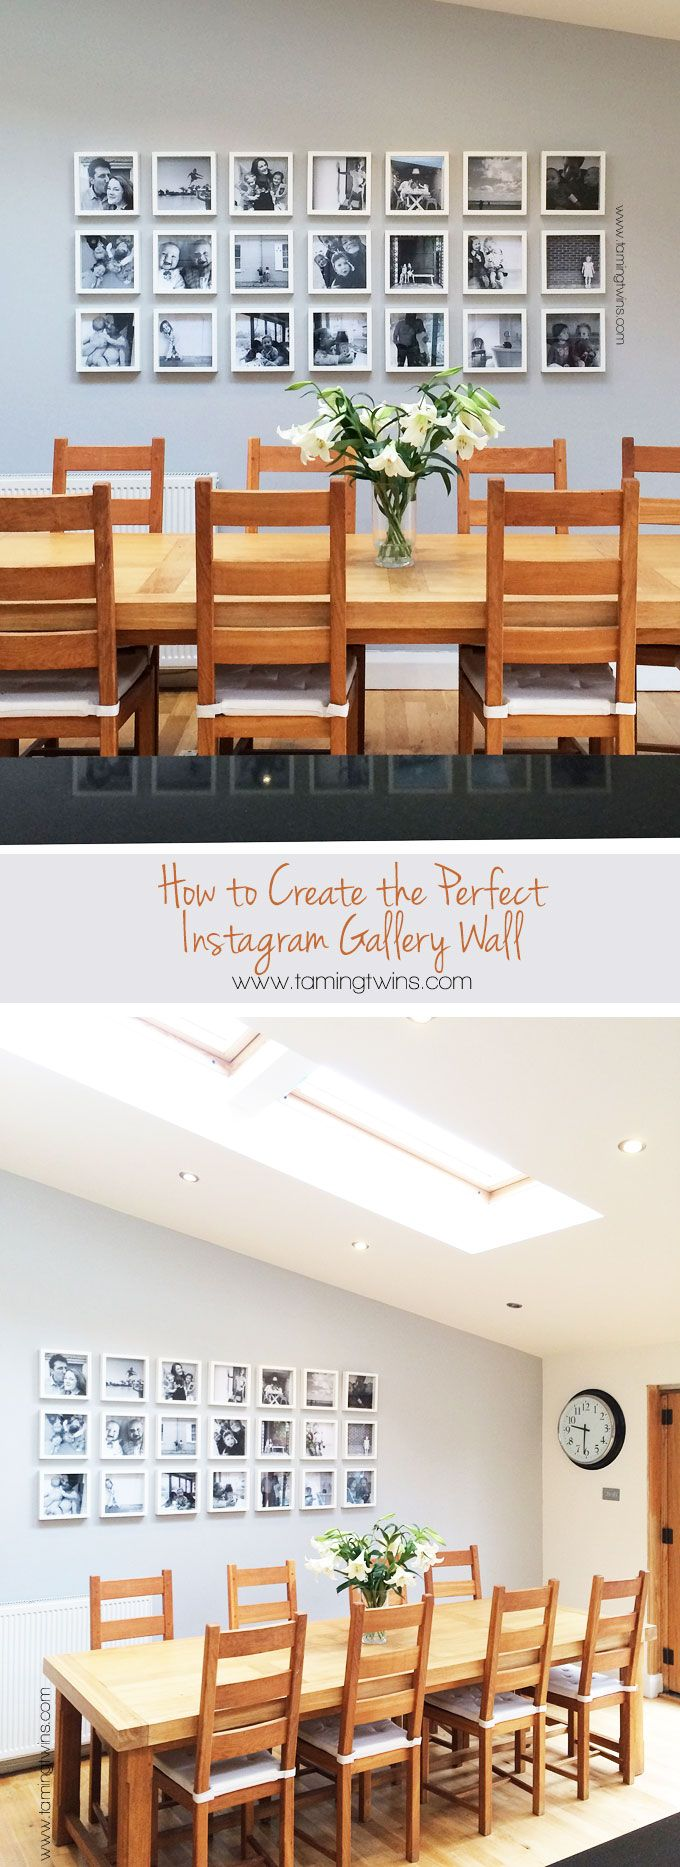 How to create the perfect Instagram gallery wall (using Ikea frames!) Tips and tricks for getting the perfect finish. | TamingTwins.com http://www.tamingtwins.com